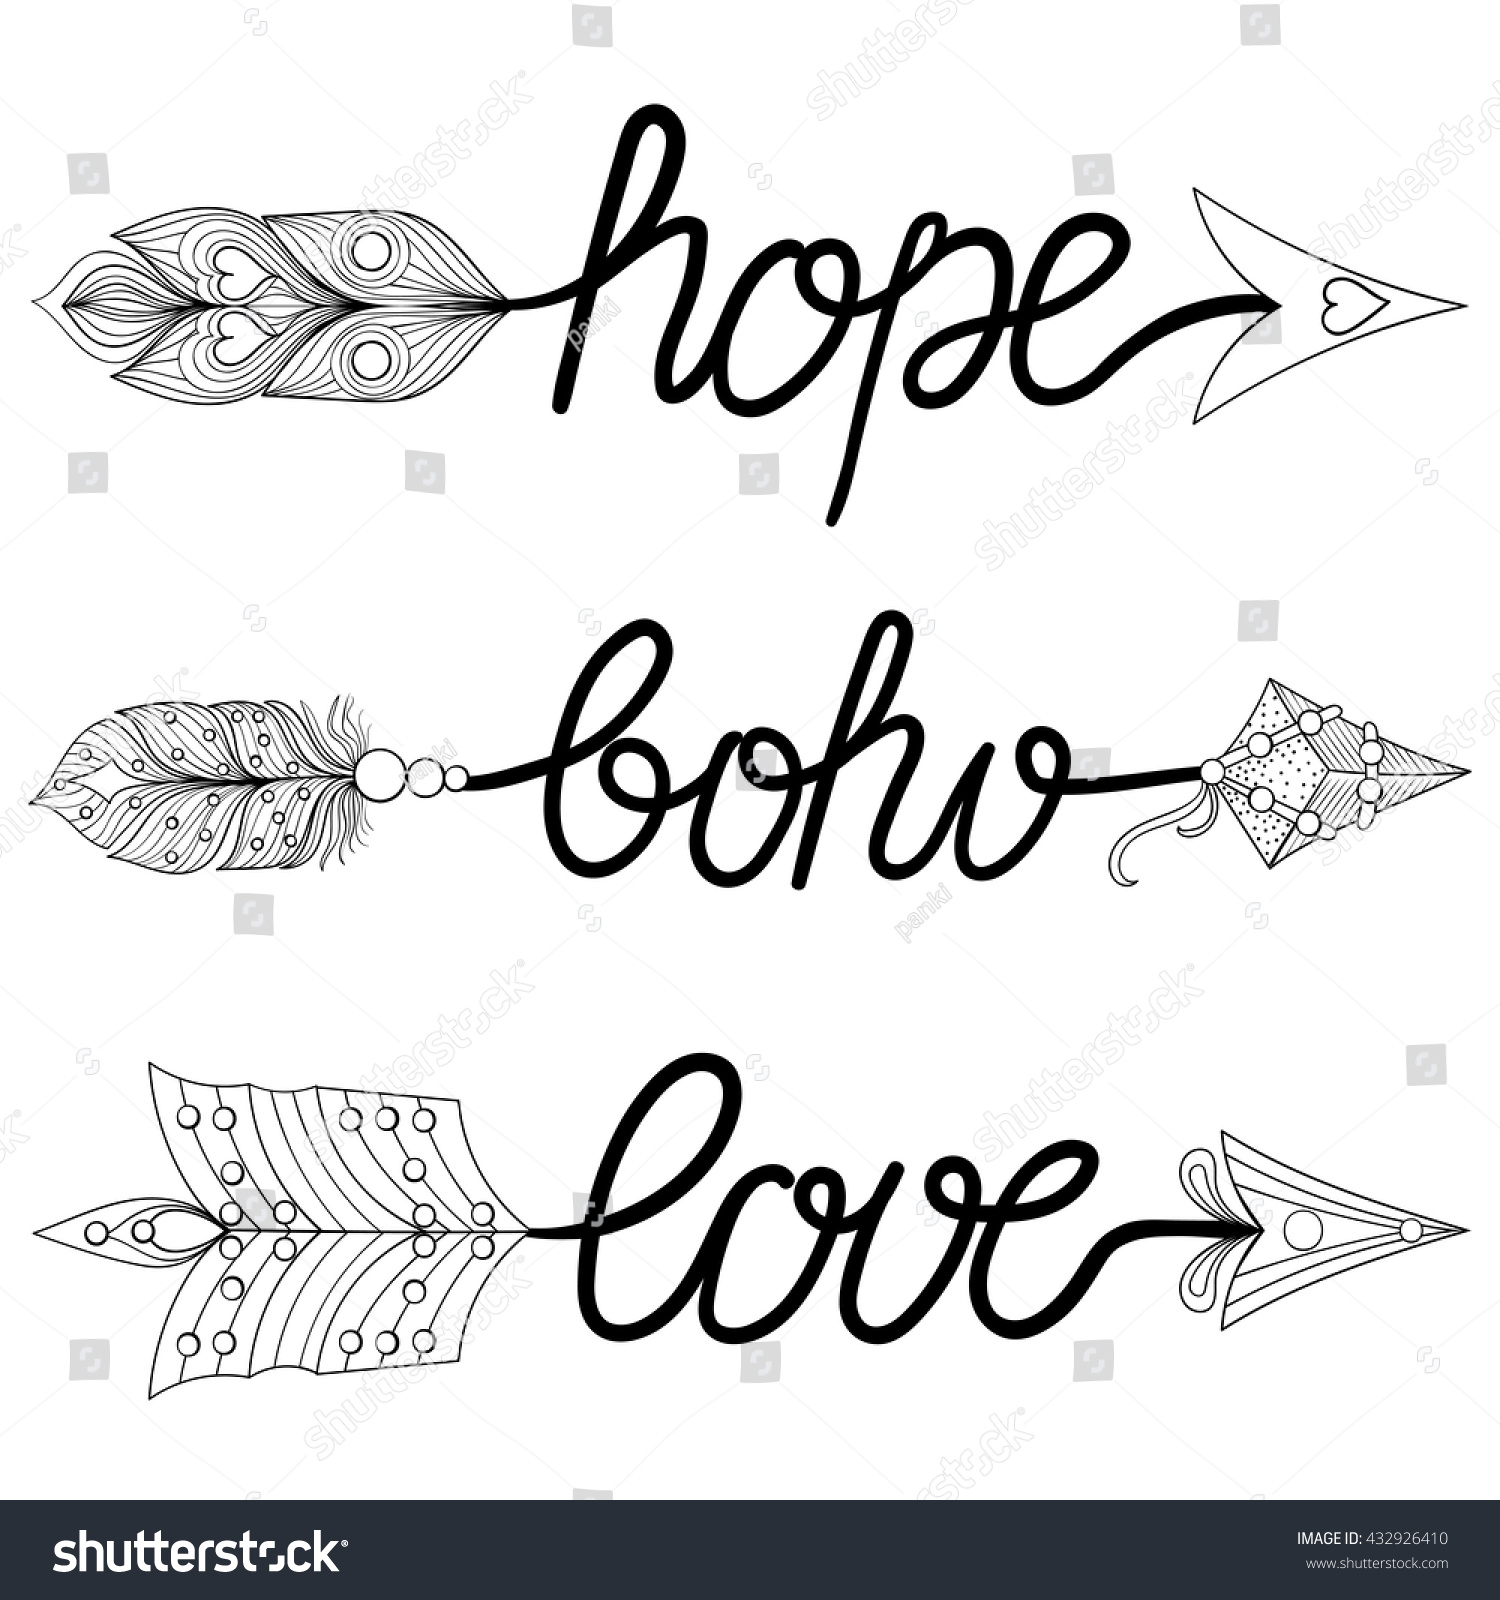 Hope Arrows. Hand drawn Signs with feathers for adult coloring pages ...